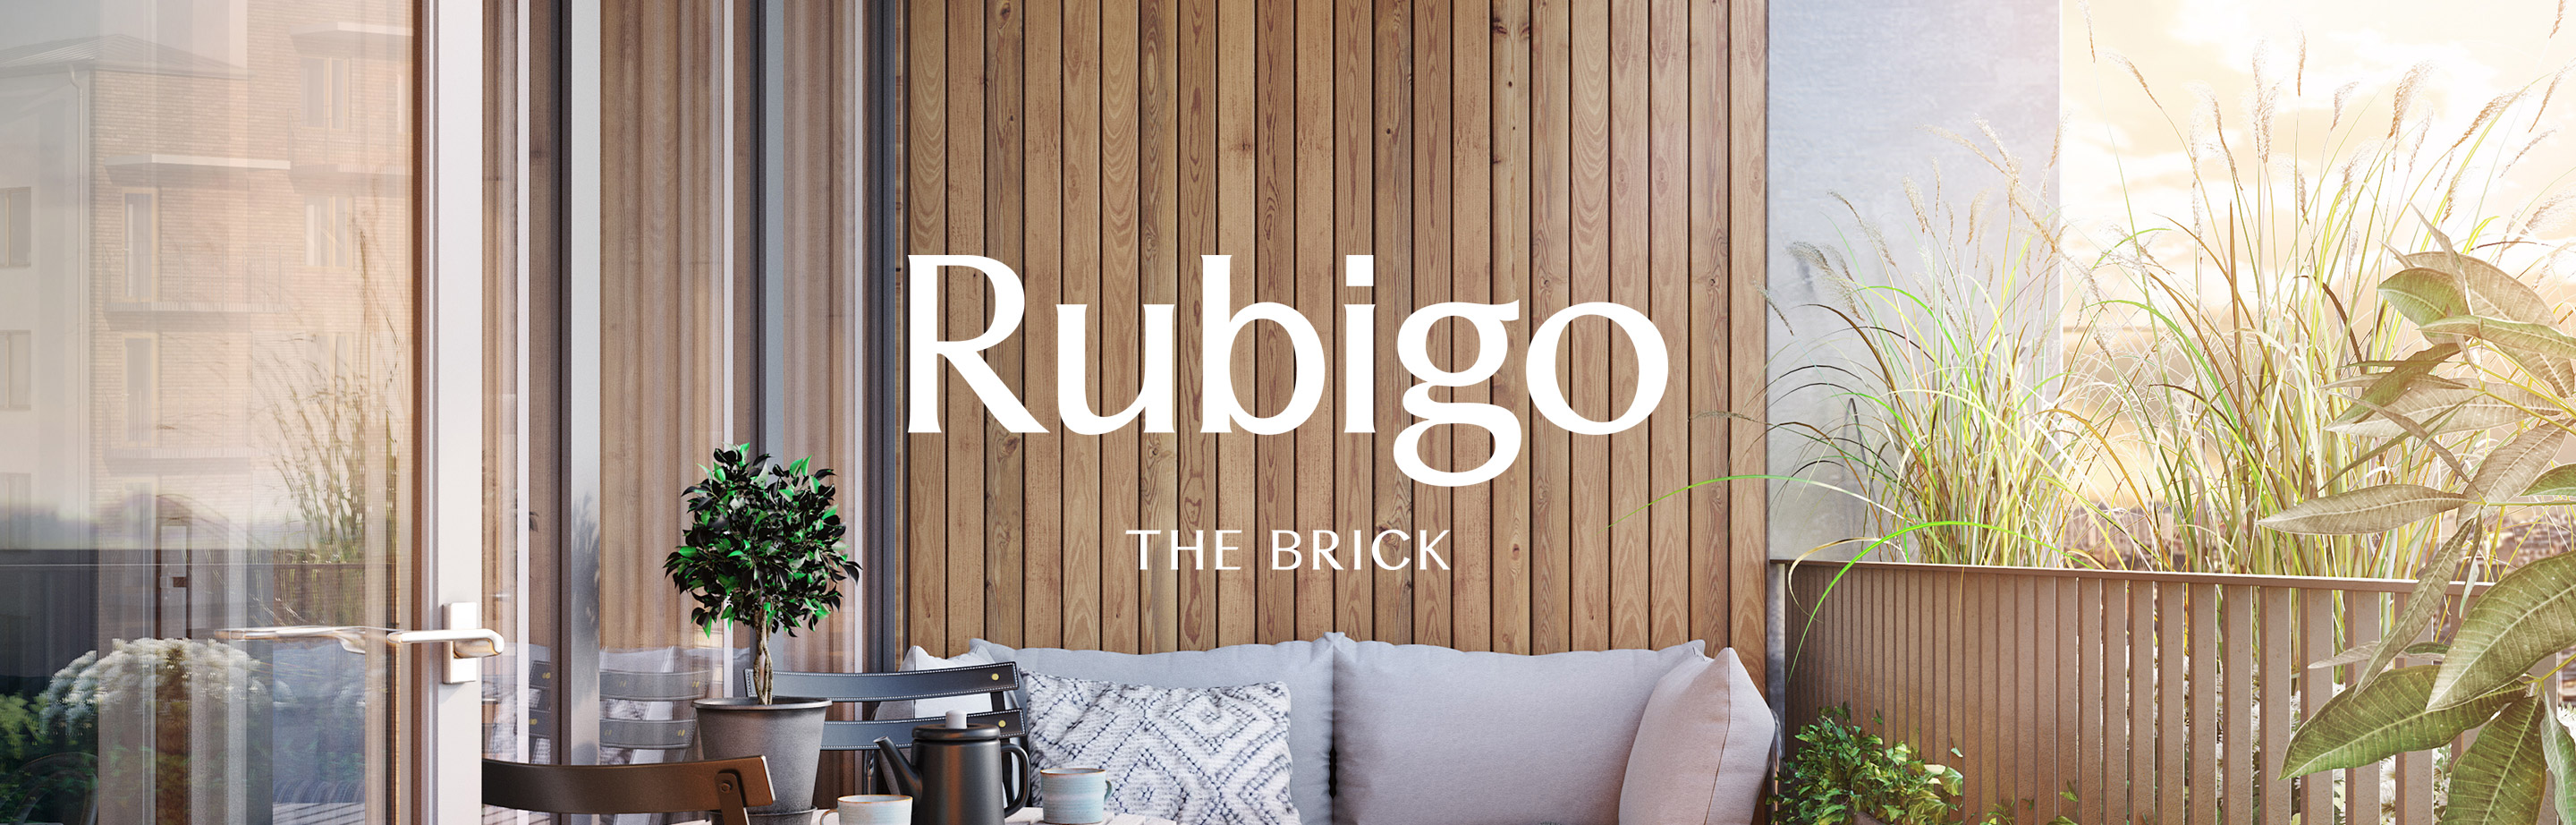 Fantastic Frank nyproduktion Rubigo The Brick